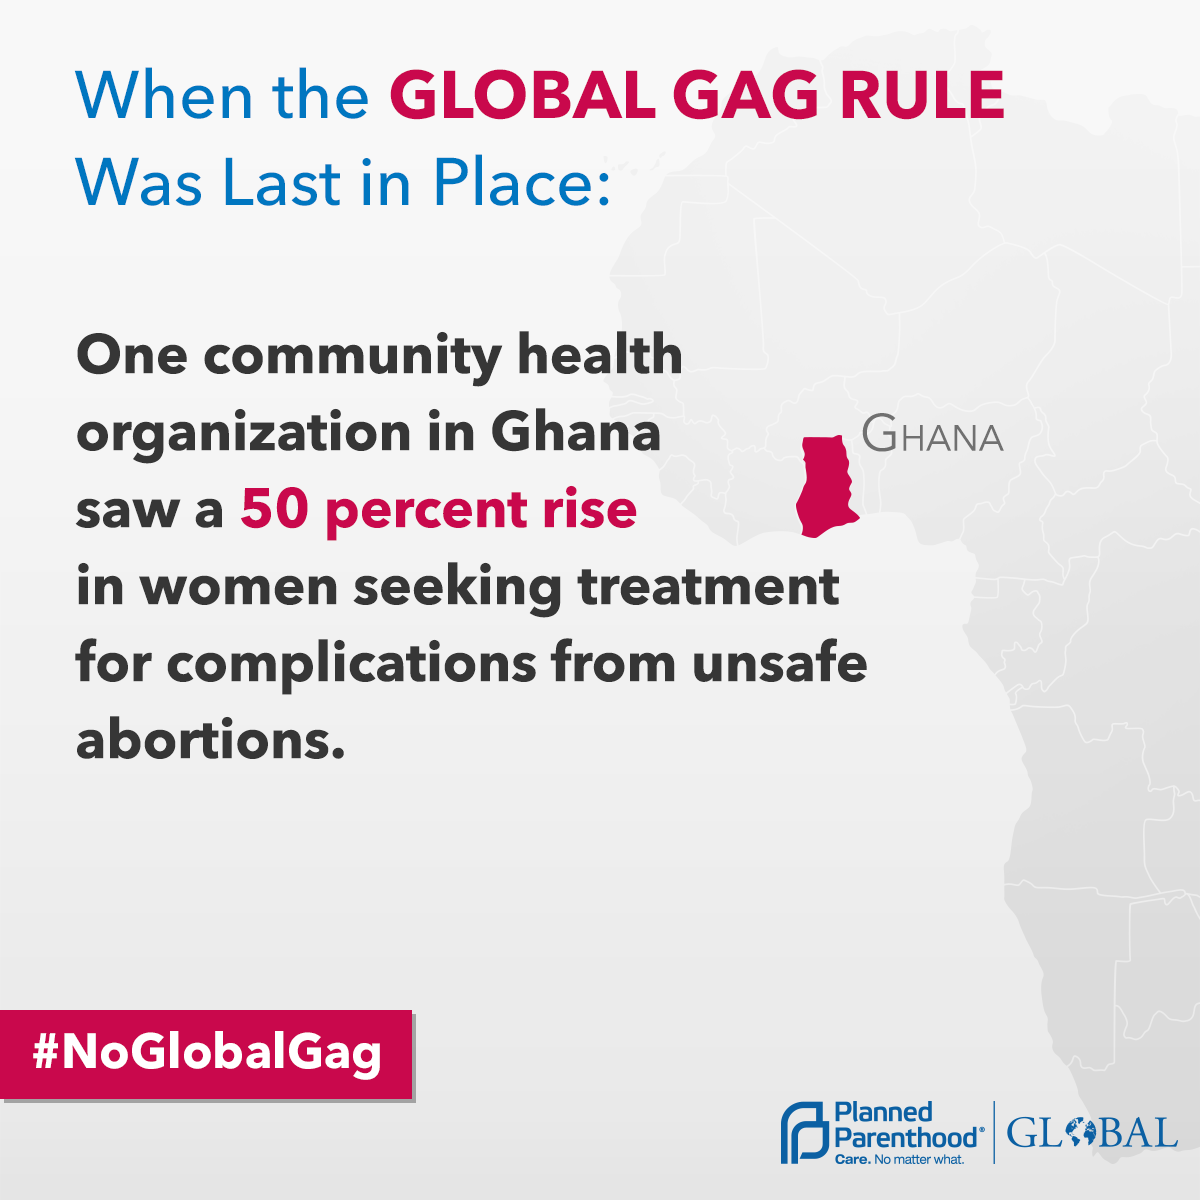 Global Gag Rule and Ghana